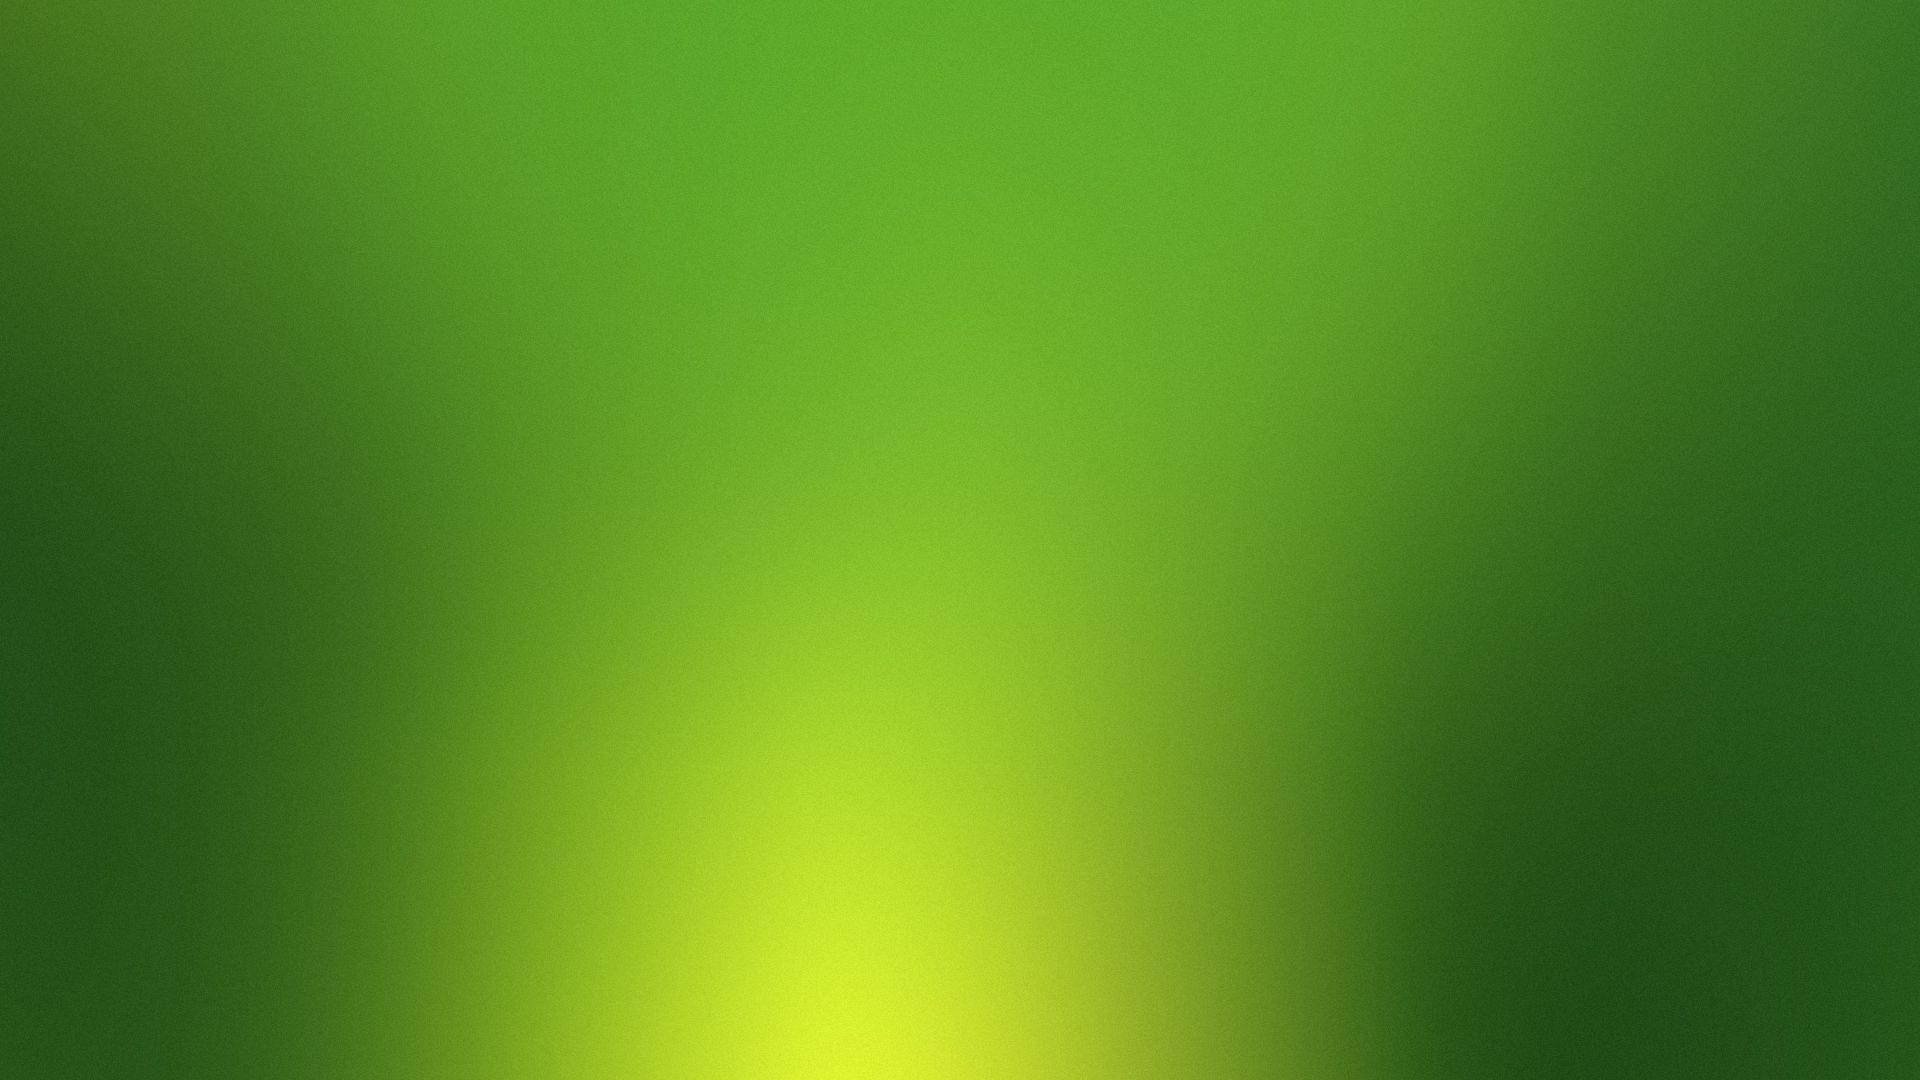 green color hd free wallpapers backgrounds - Apple Green Color